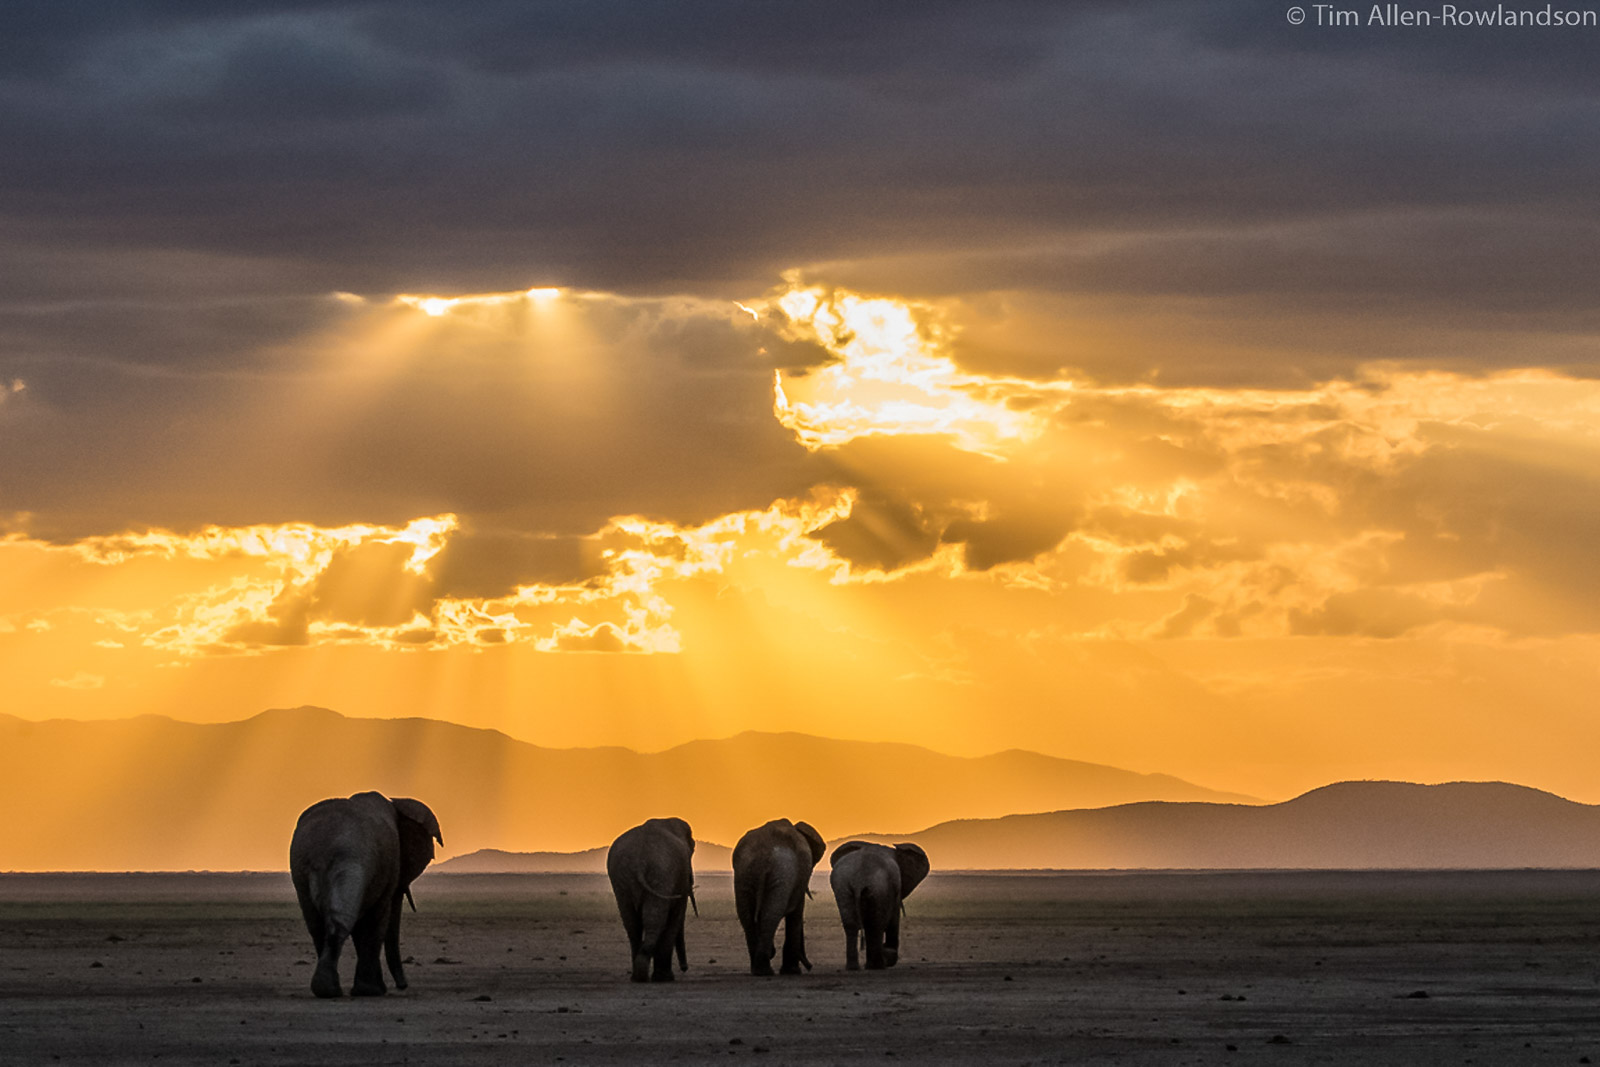 Small herd of elephants heading westwards at sunset, Amboseli